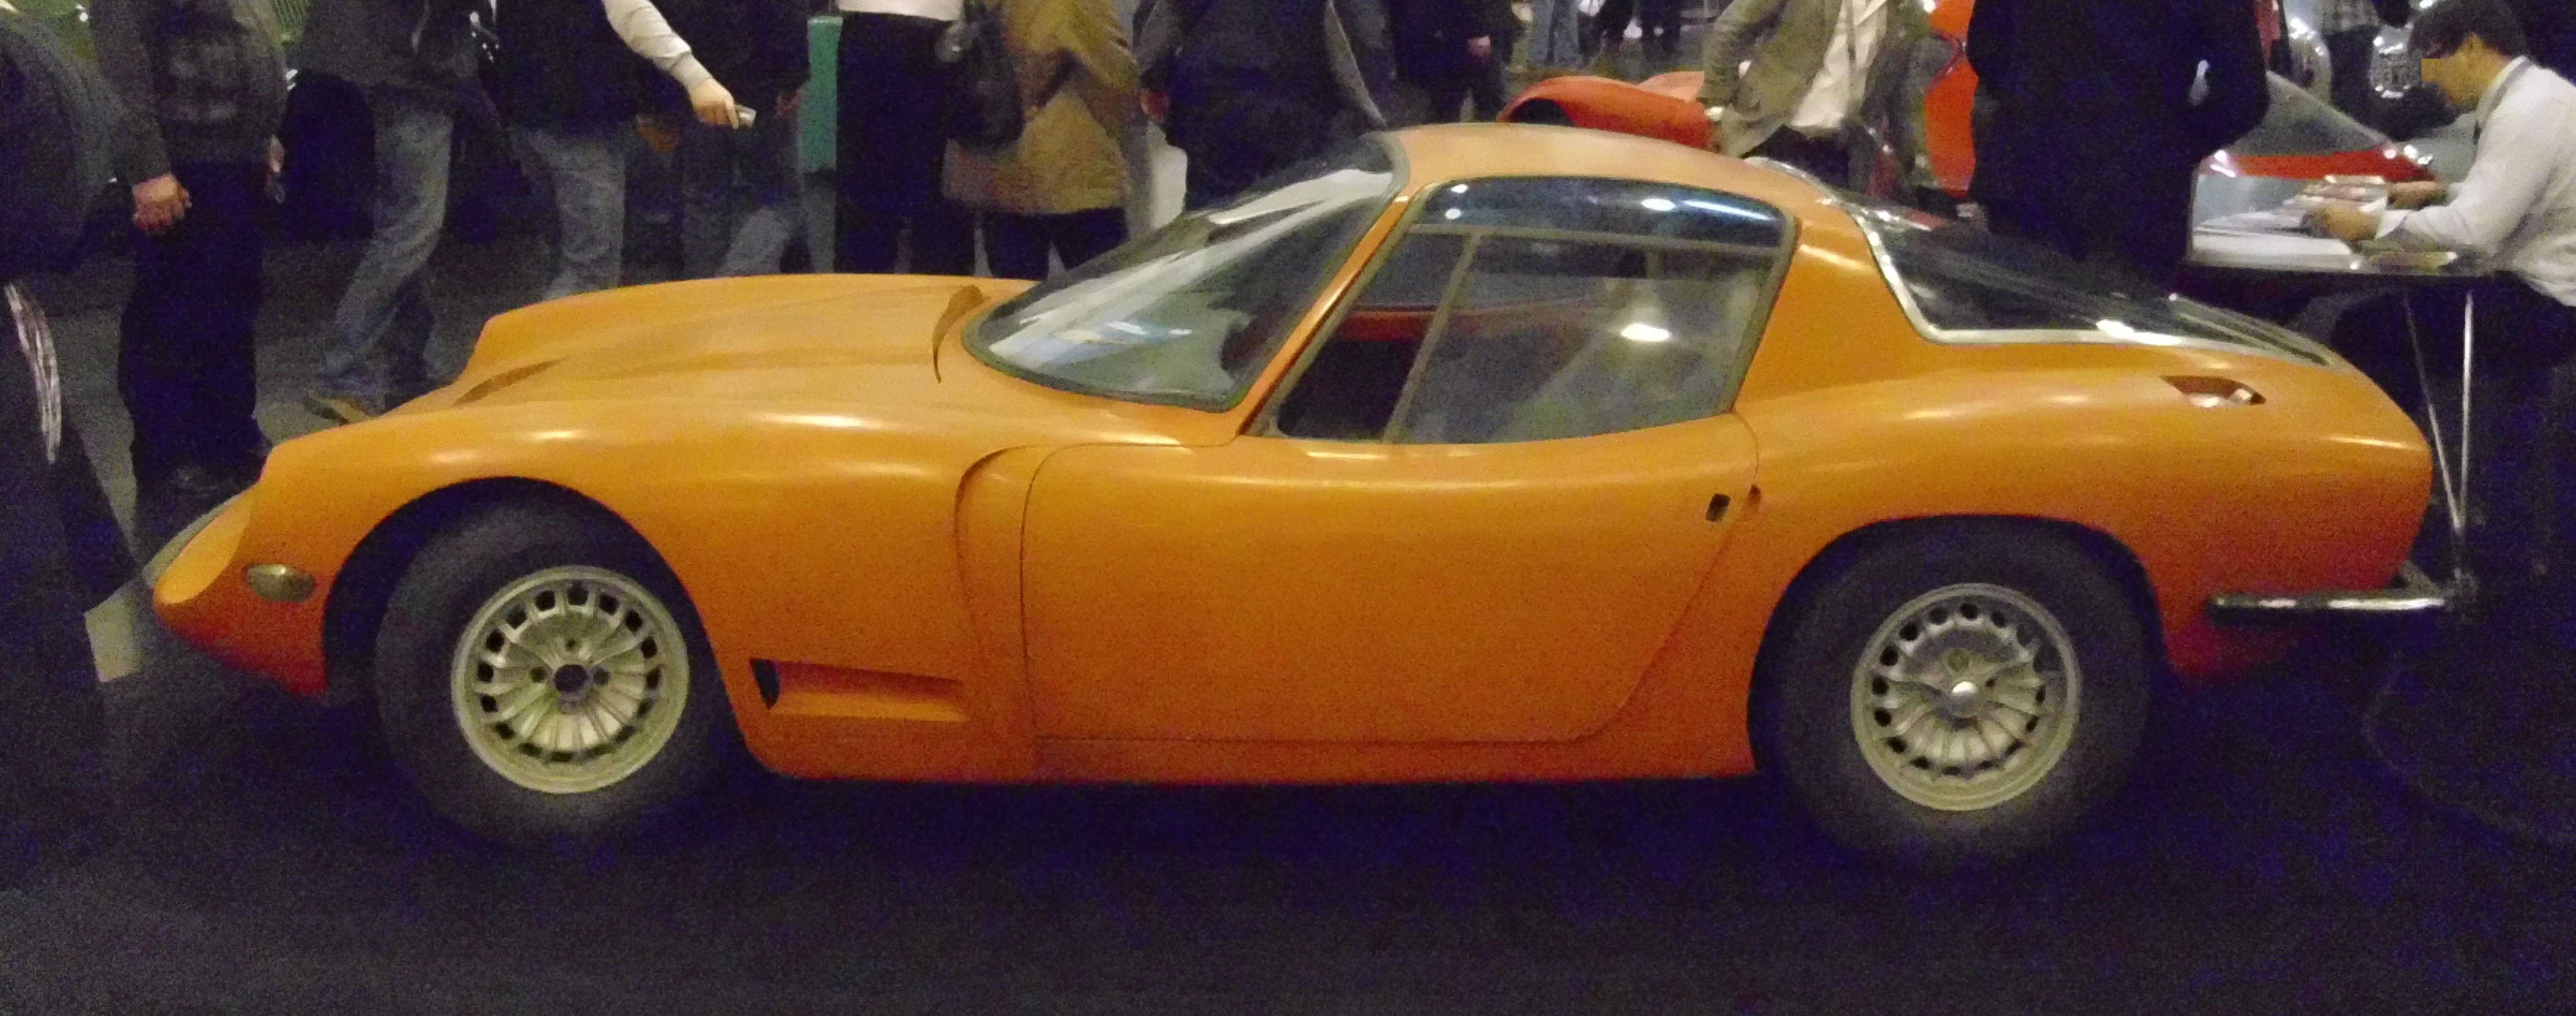 The 1900 GT Europa and P538S would follow before Bizzarrini was declared bankrupt in 1969.